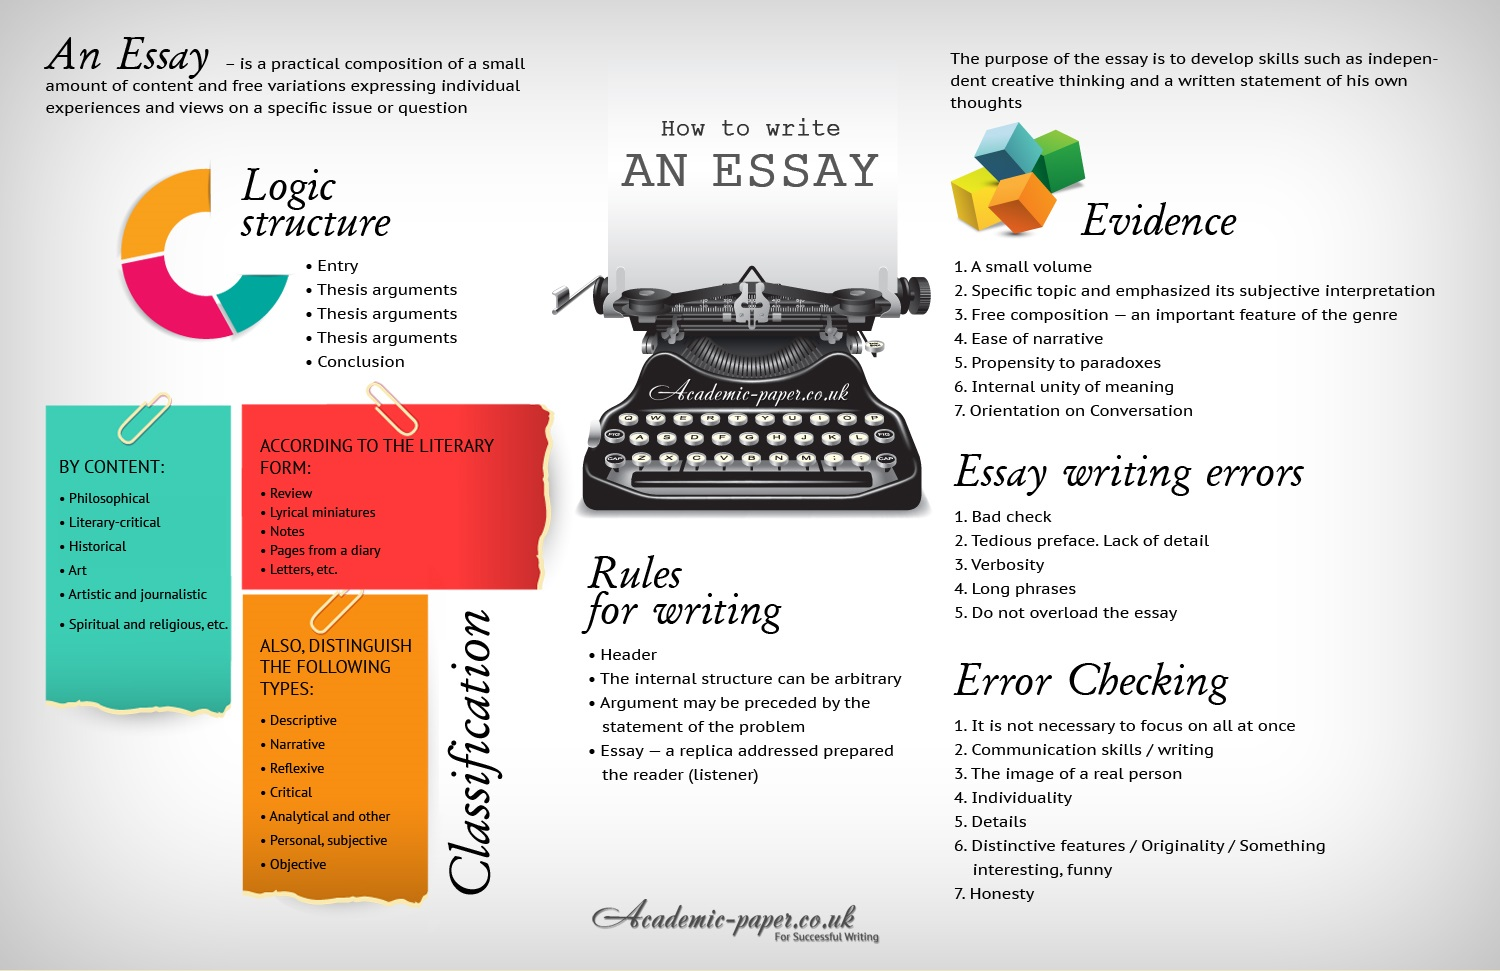 010 How To Write An Essay Unbelievable Fast In Exam 6 Hours Full